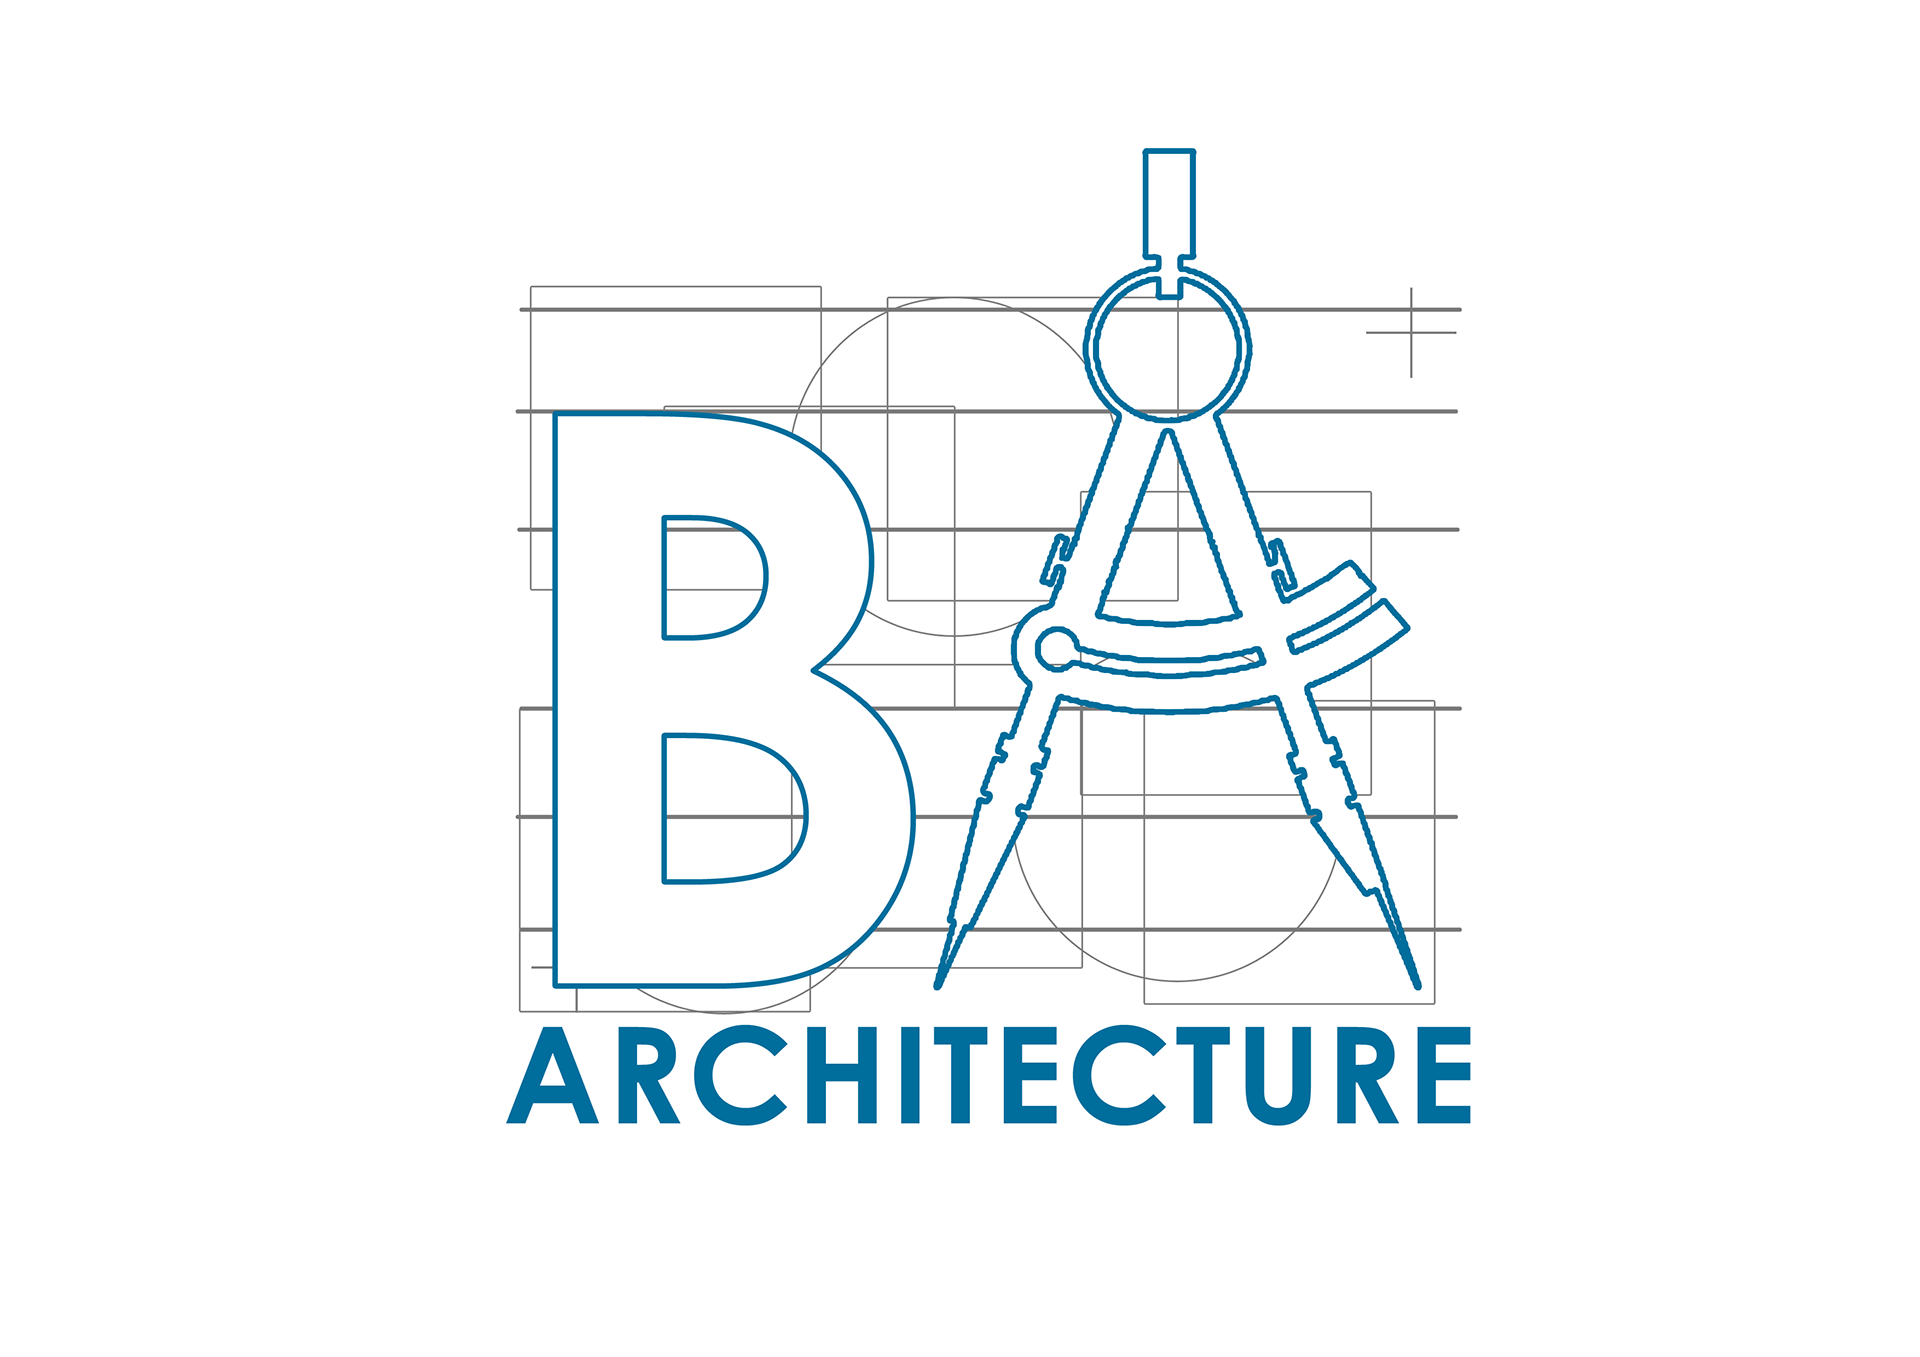 Gb designs logo design branding ba architecture for S architecture logo